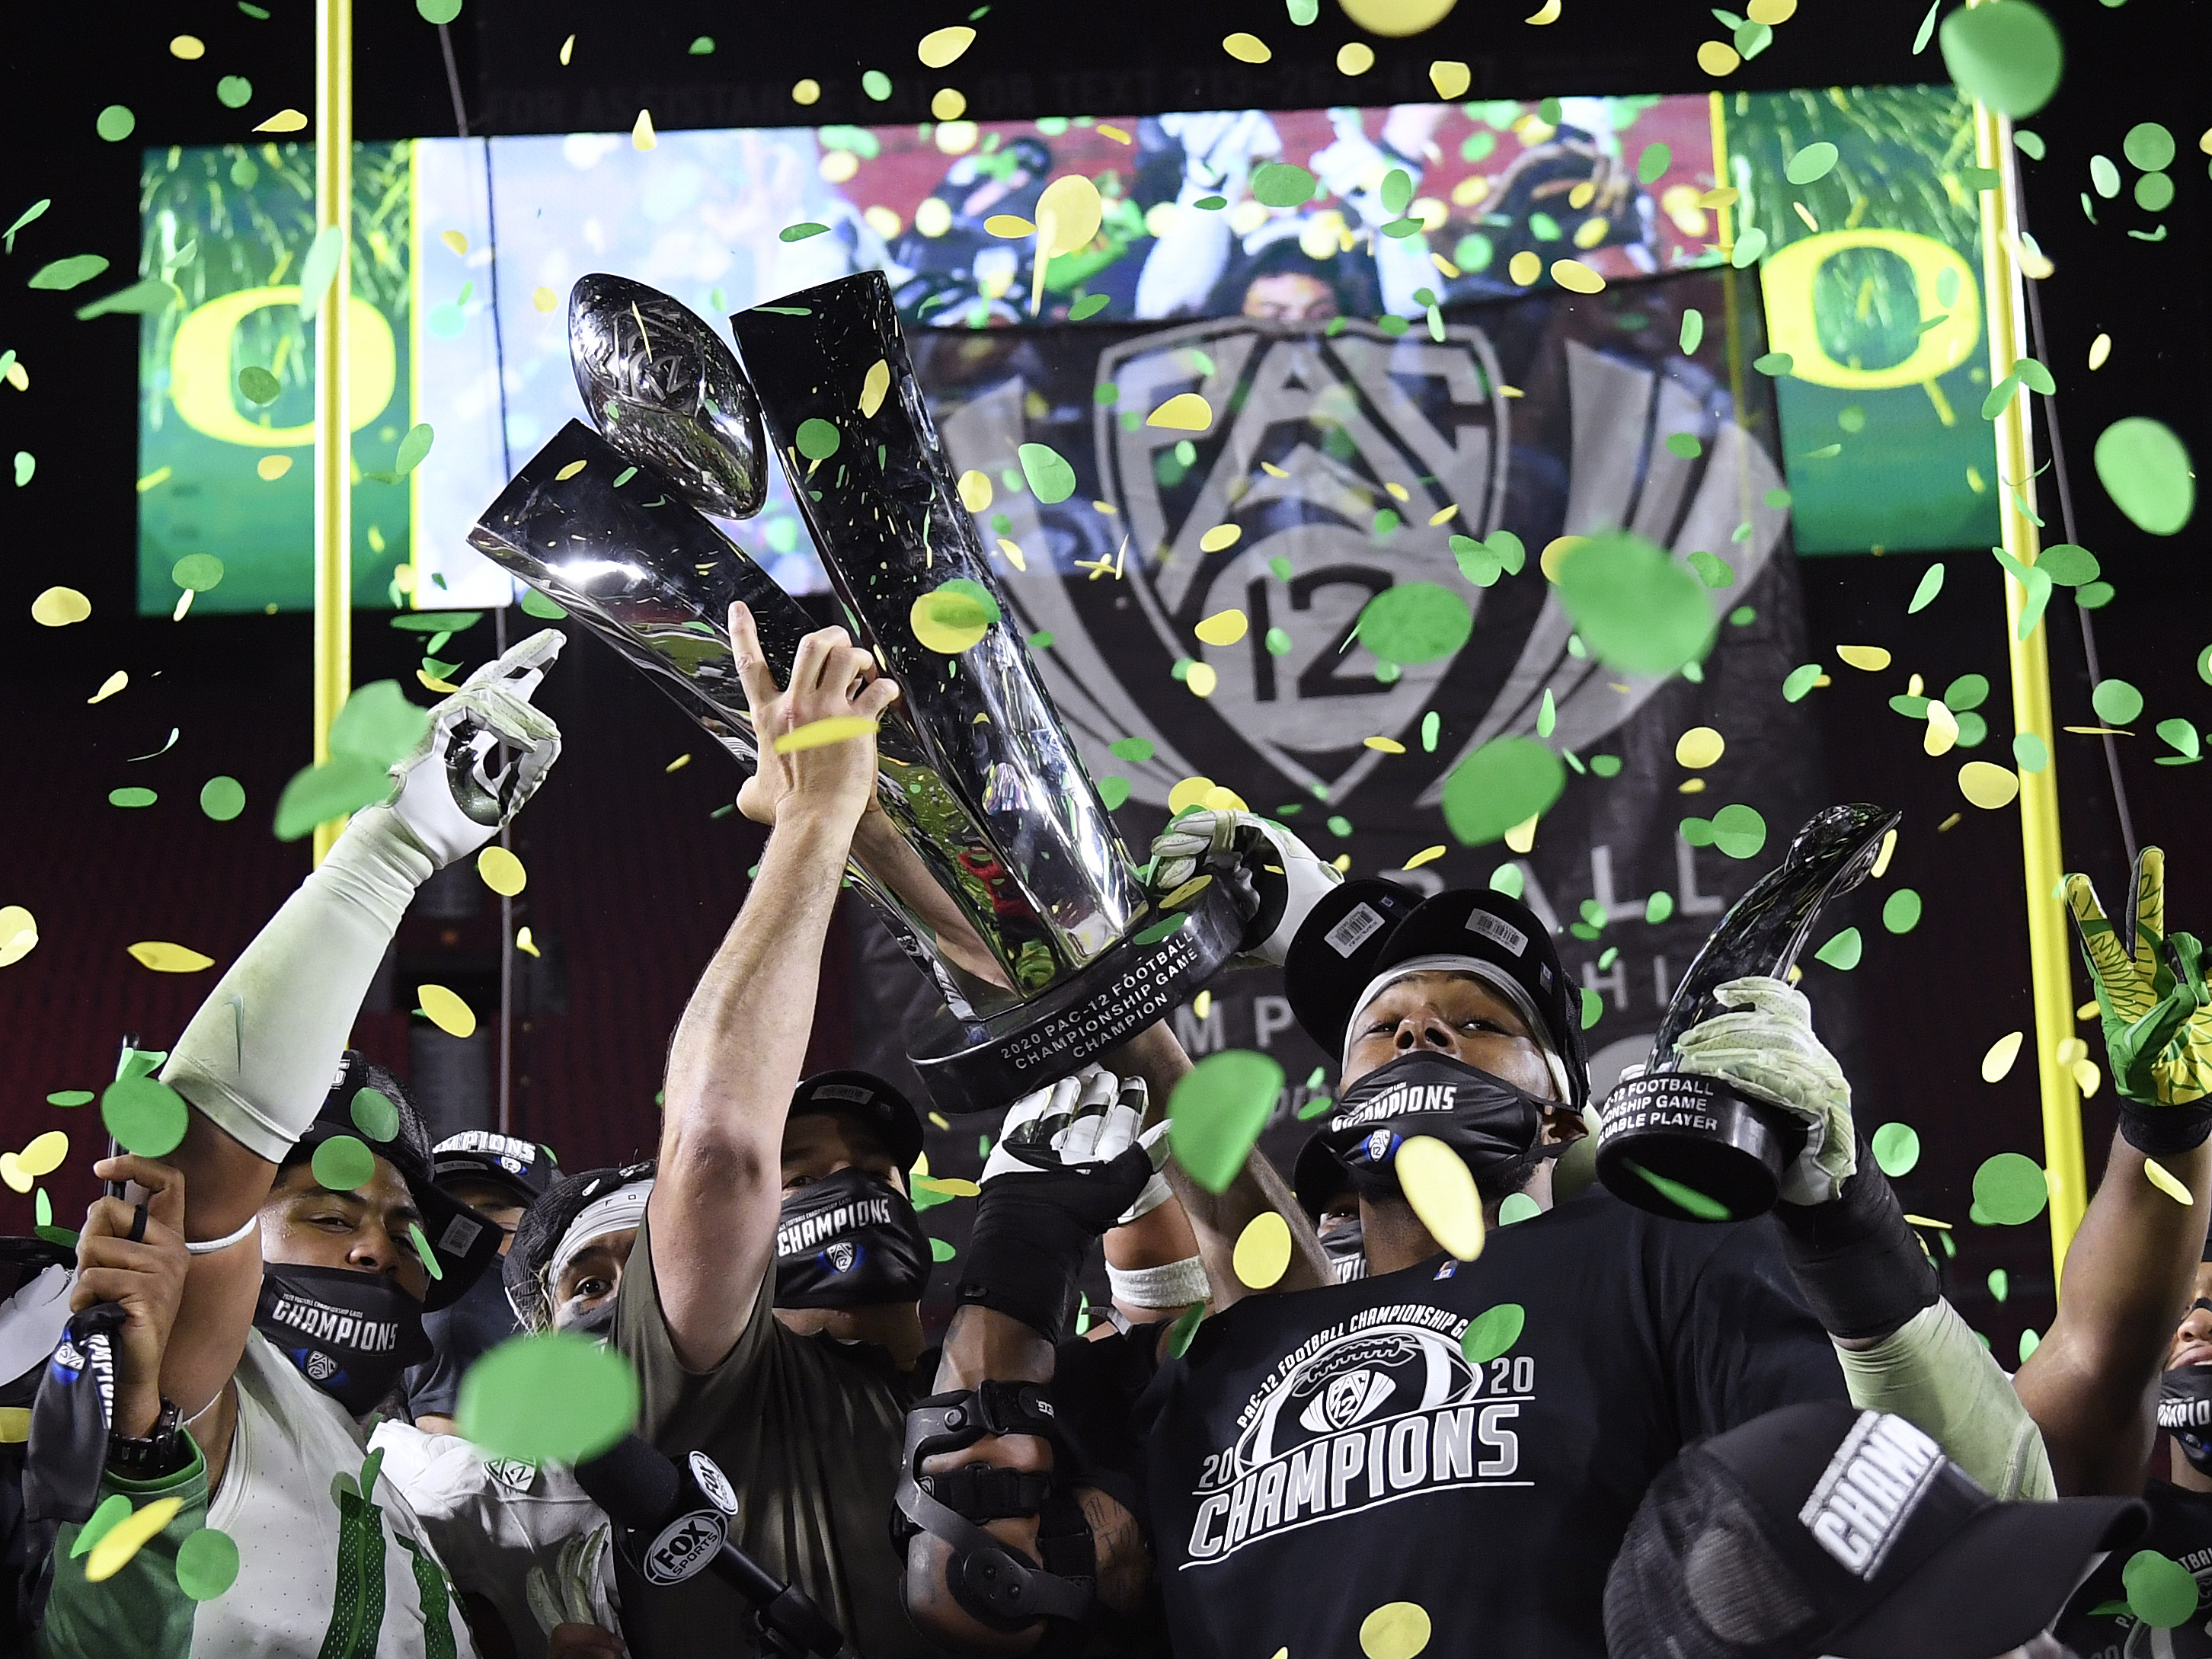 Head coach Mario Cristobal hoists the trophy, with most valuable player, Kayvon Thibodeaux of the Oregon Ducks, in celebration a 31-24 win over the USC Trojans during the PAC 12 2020 Football Championship at United Airlines Field at the Coliseum on December 18, 2020 in Los Angeles, California.